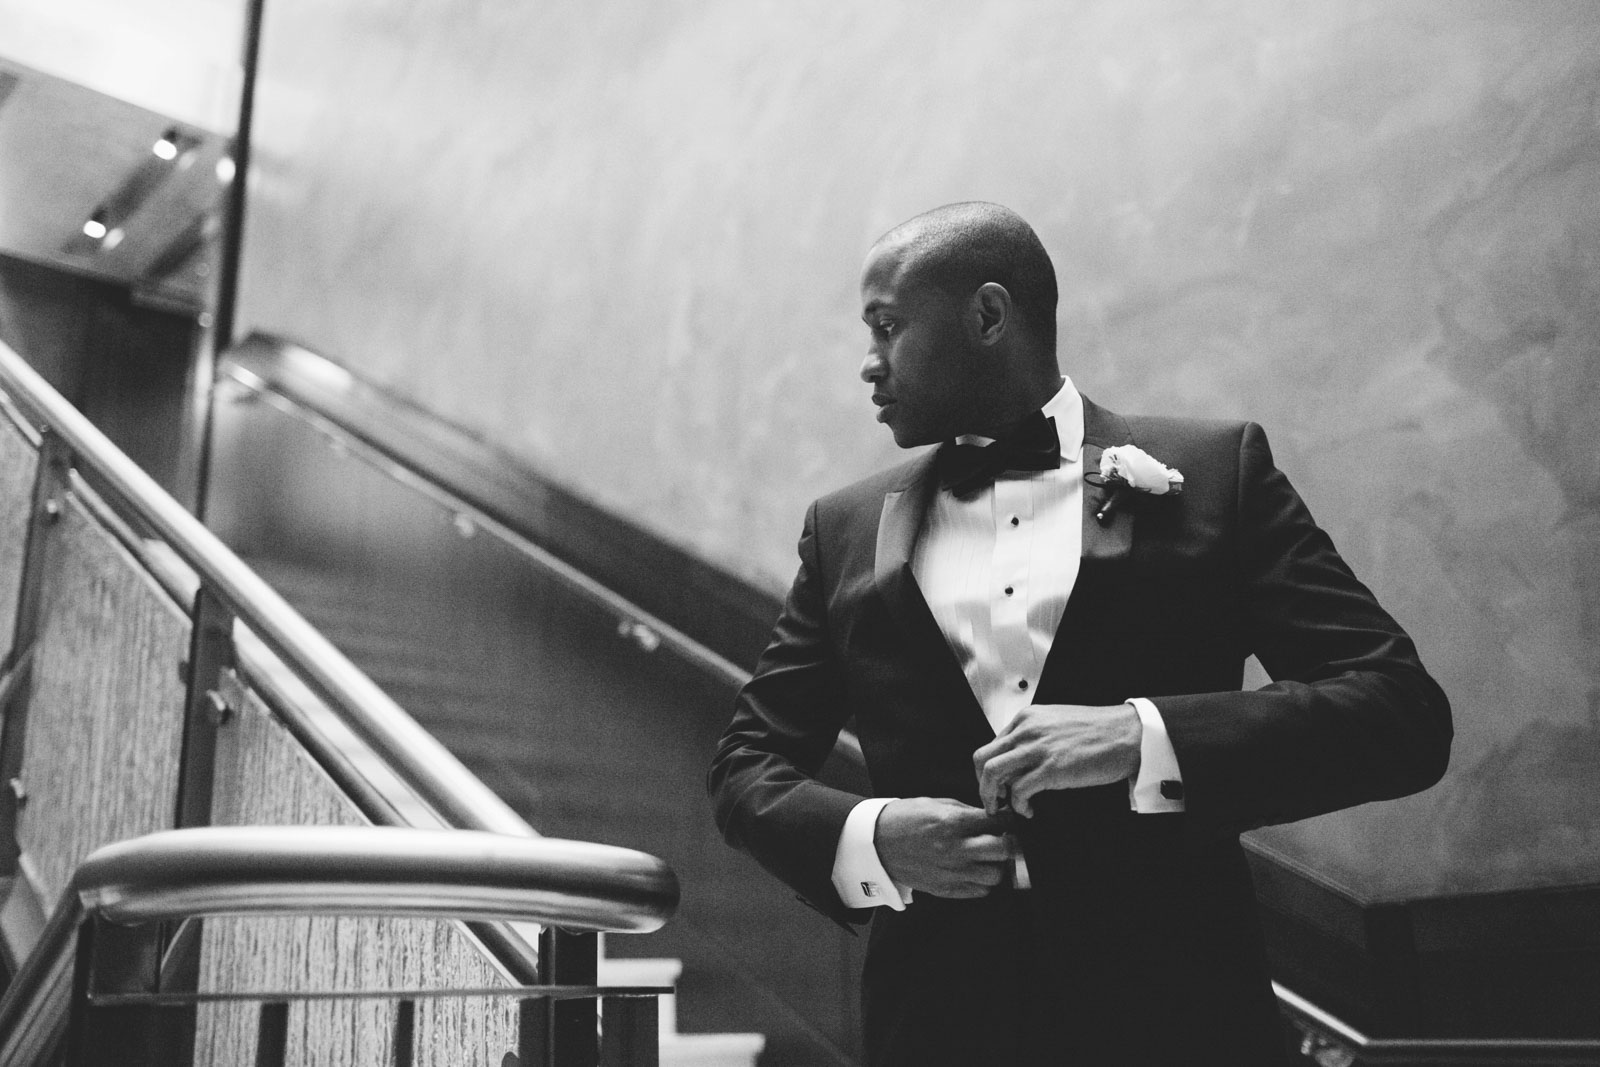 black and white groom portrait putting his jacket and waiting on staircase for his bride